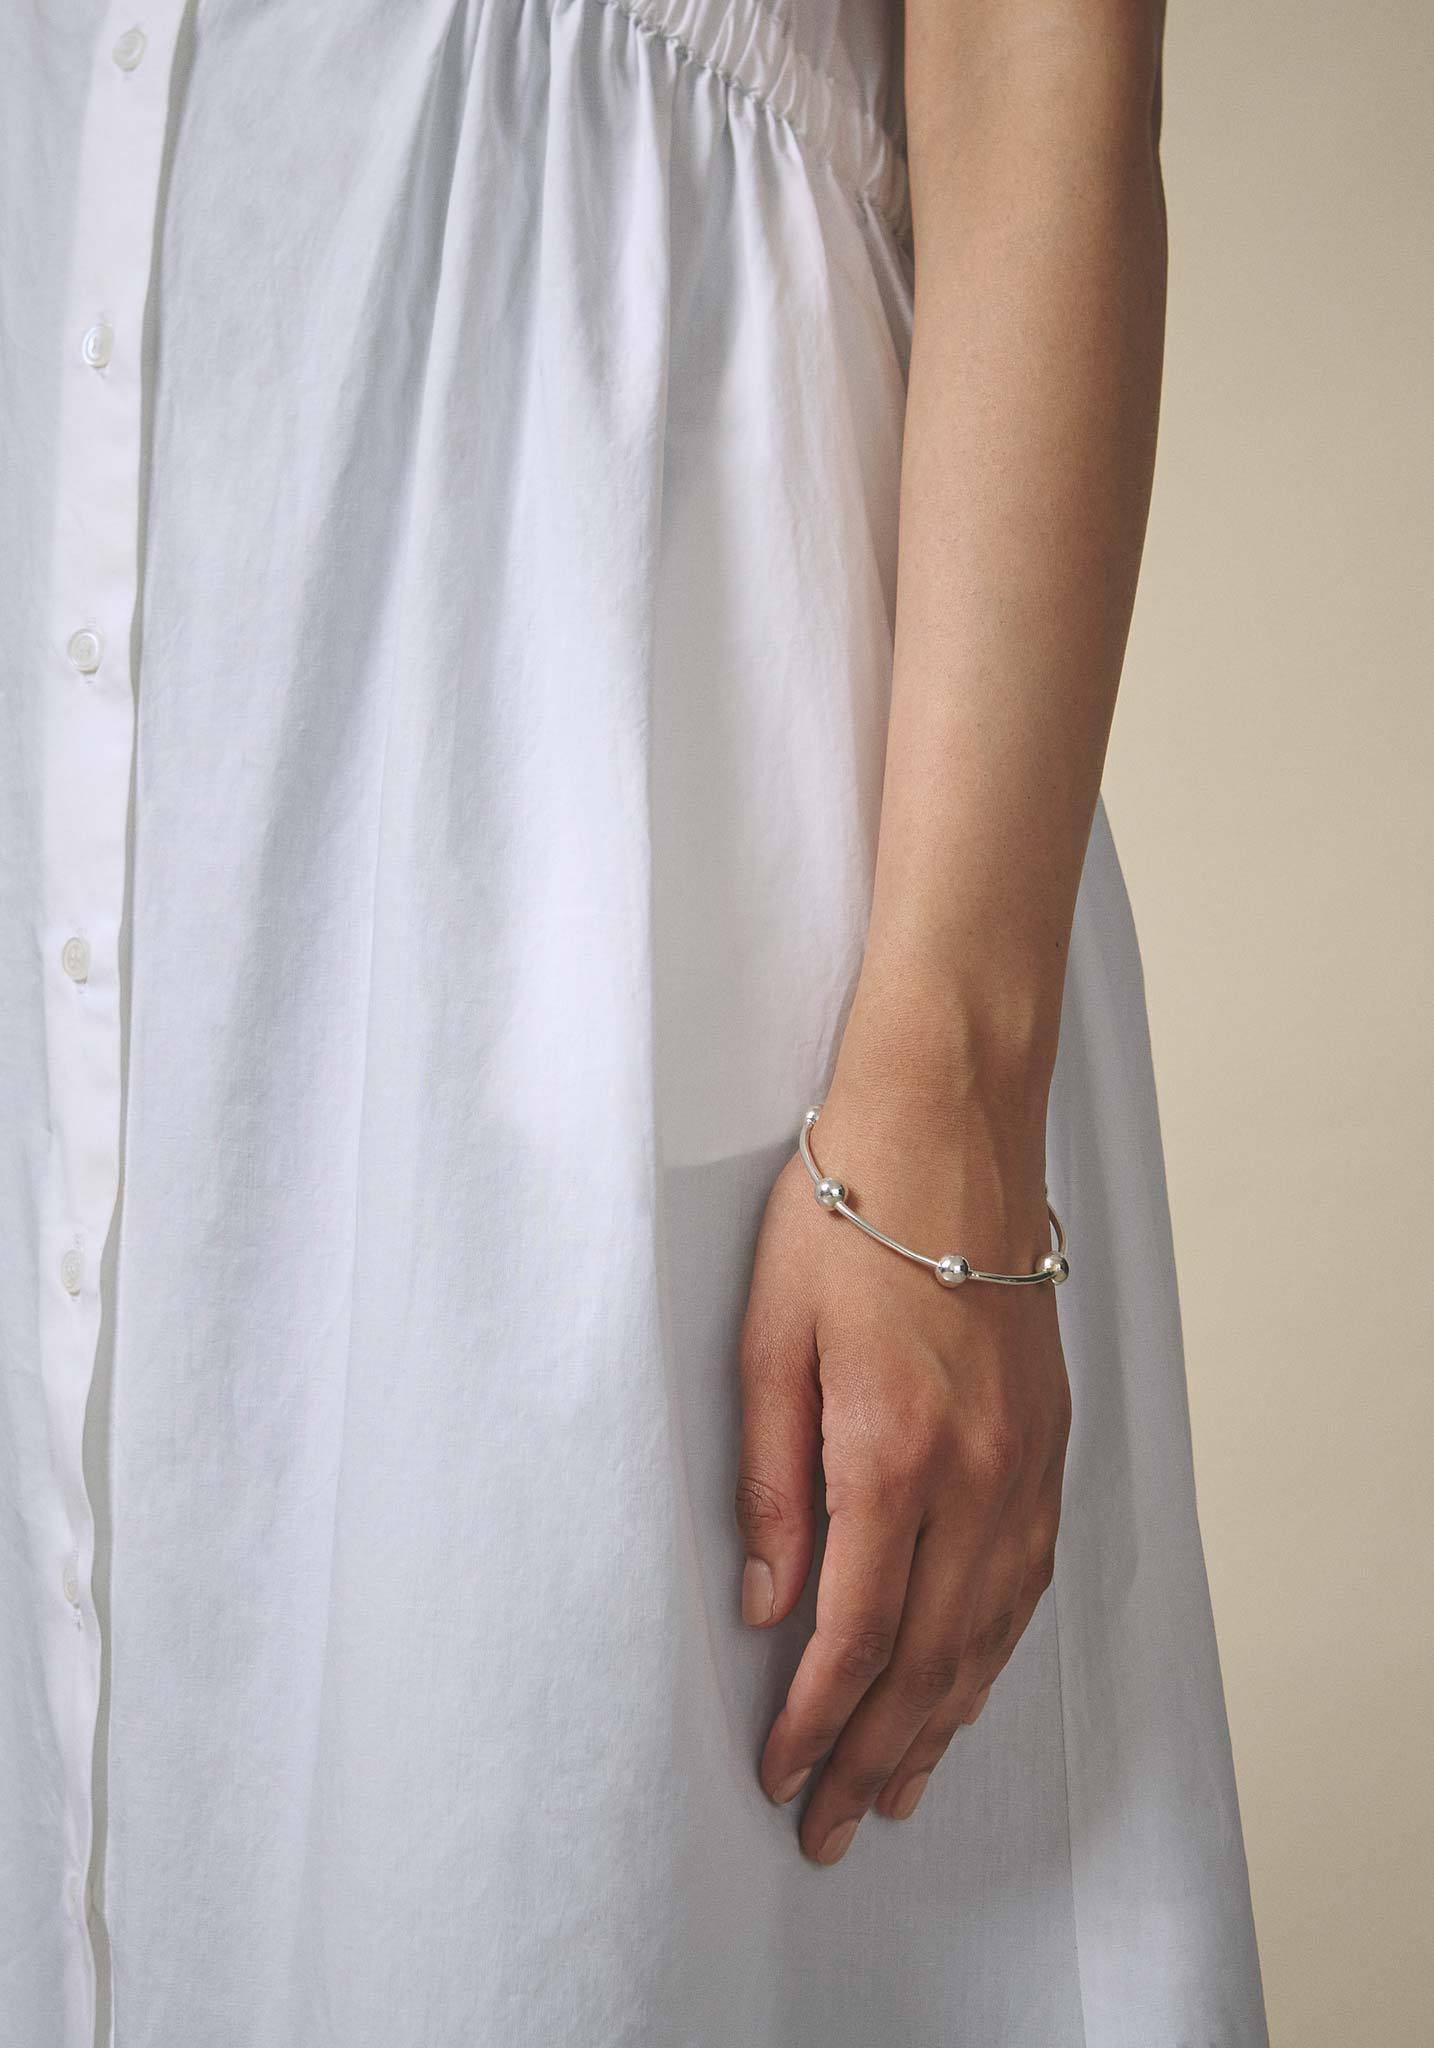 Zohra Rahman, Sterling Silver Grill Churi Bangle